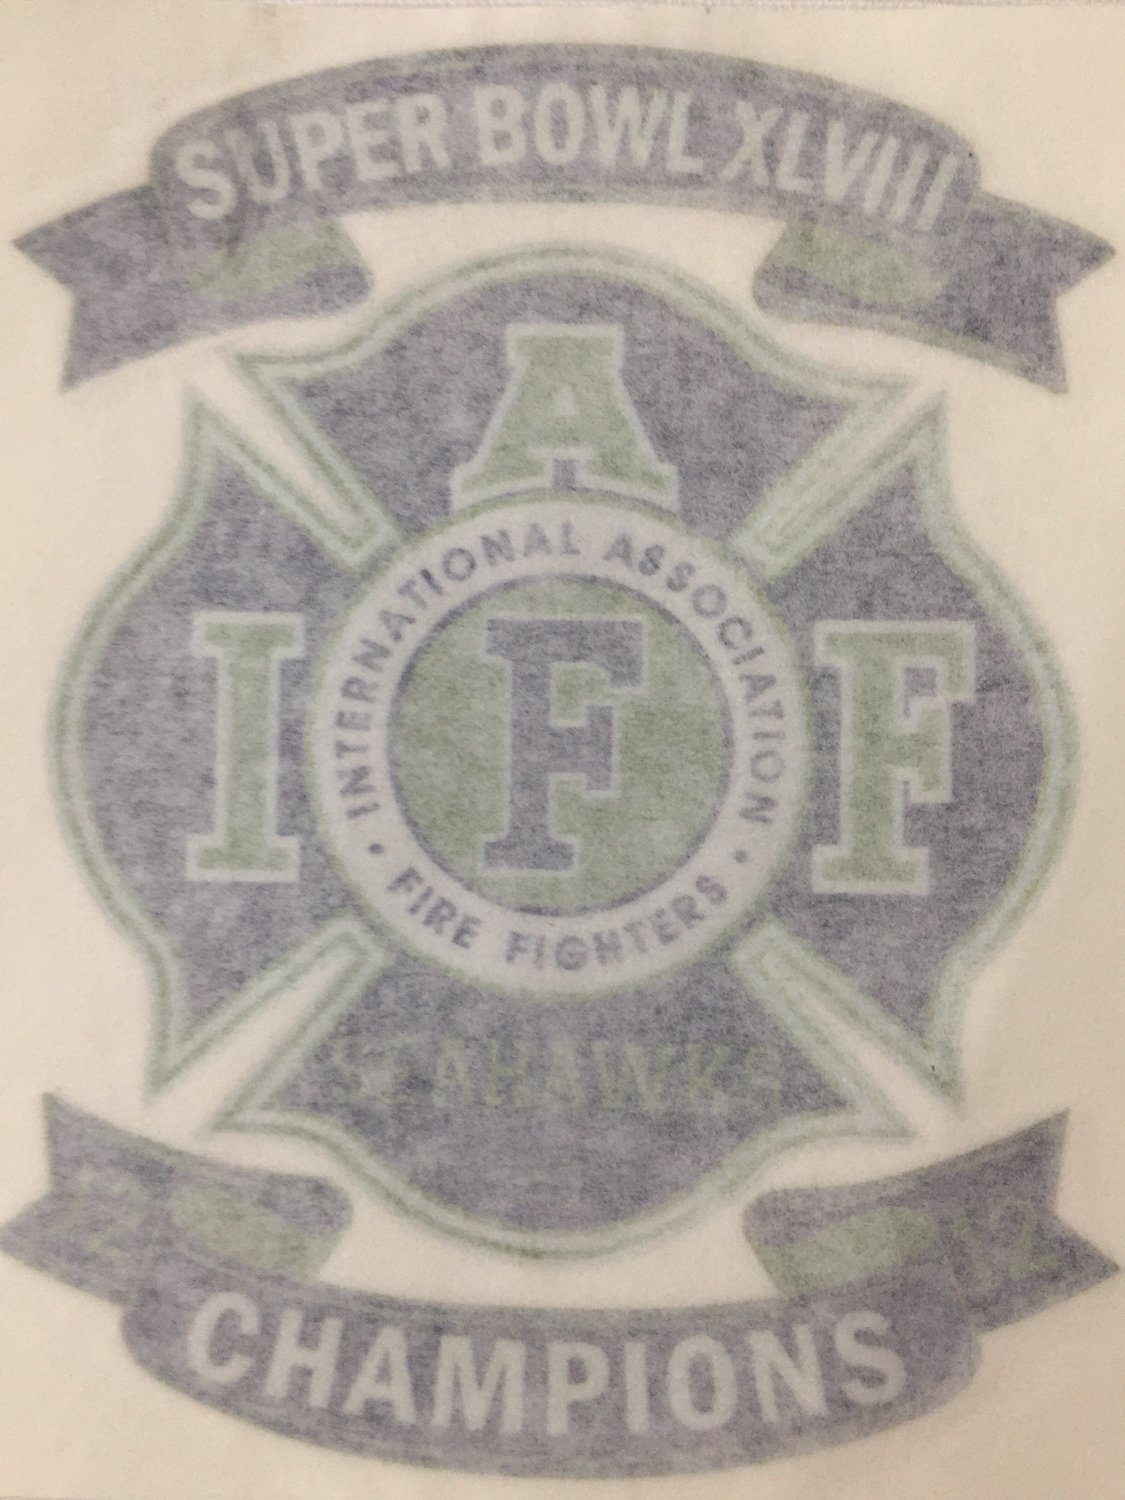 Vehicle Sticker IAFF Superbowl Champs